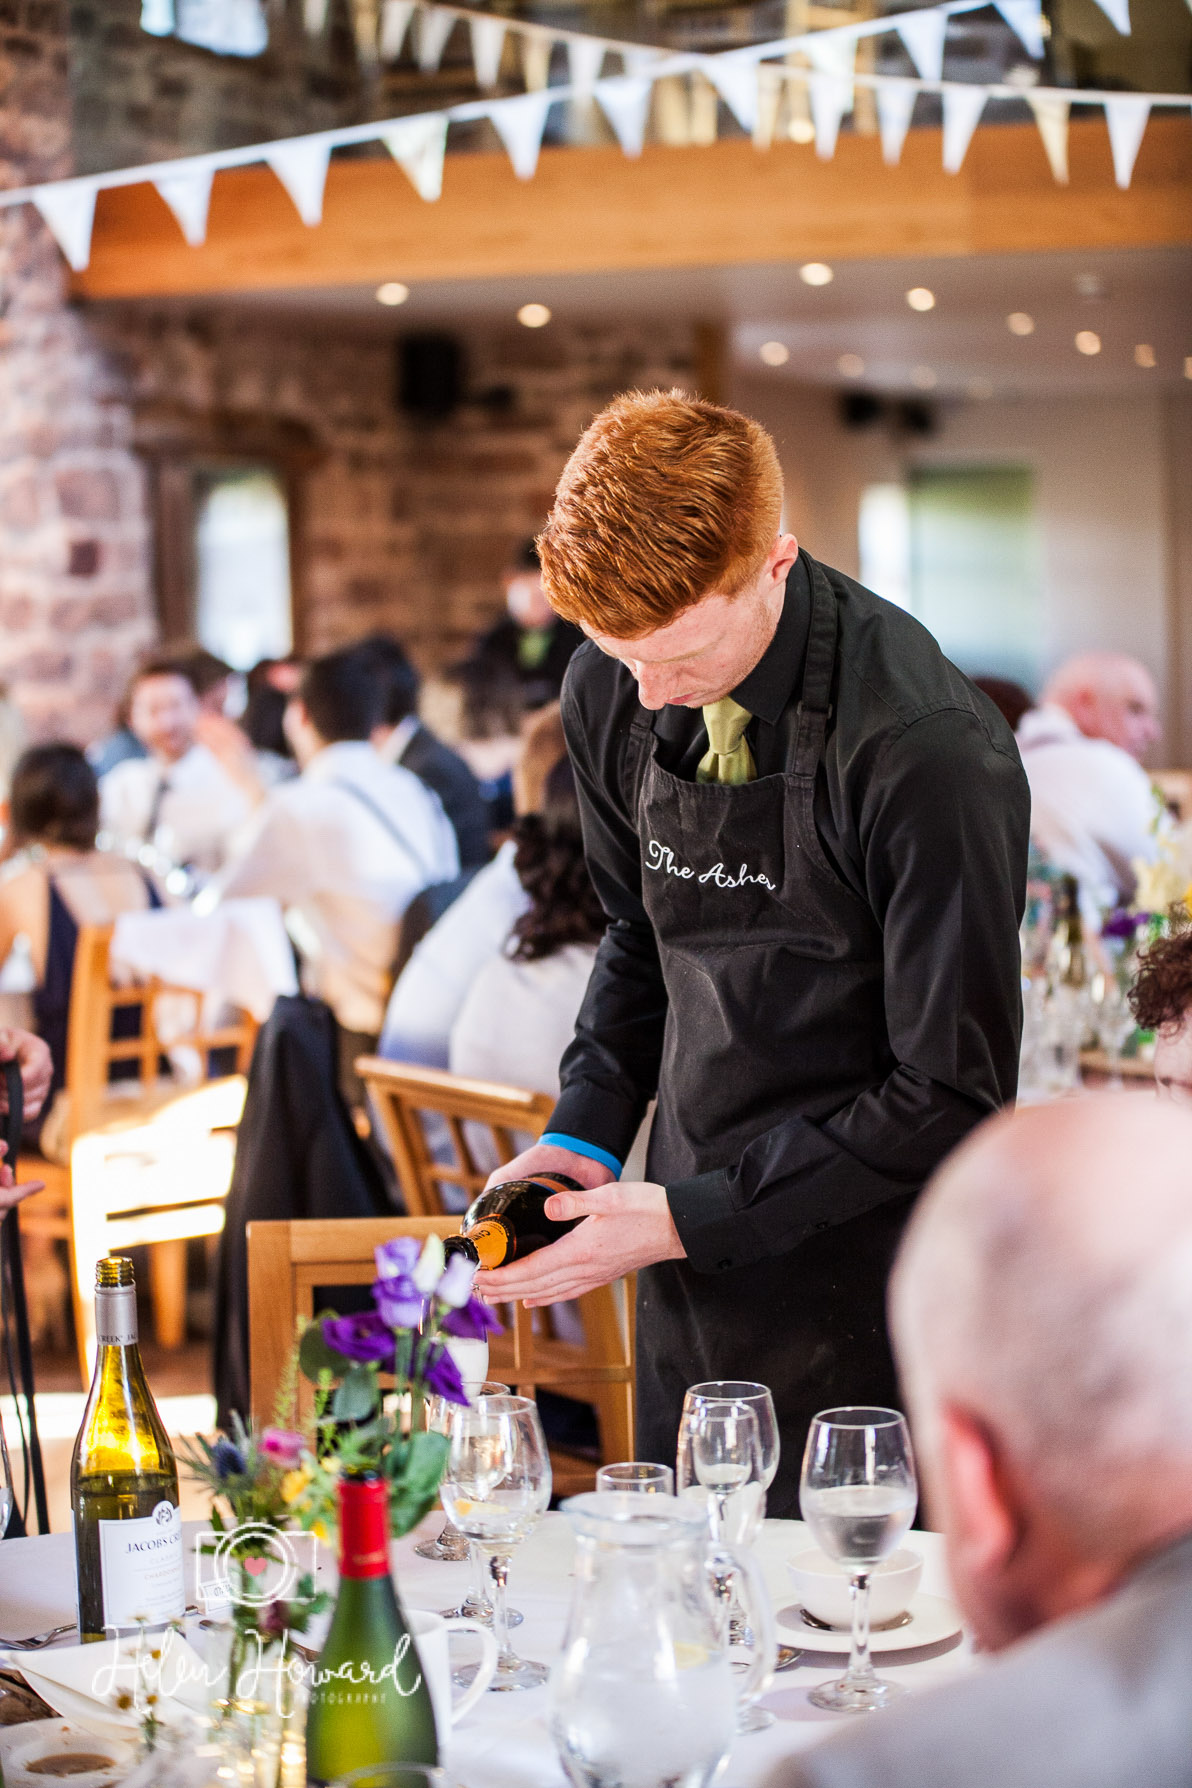 The Ashes Staff serving his table of guests